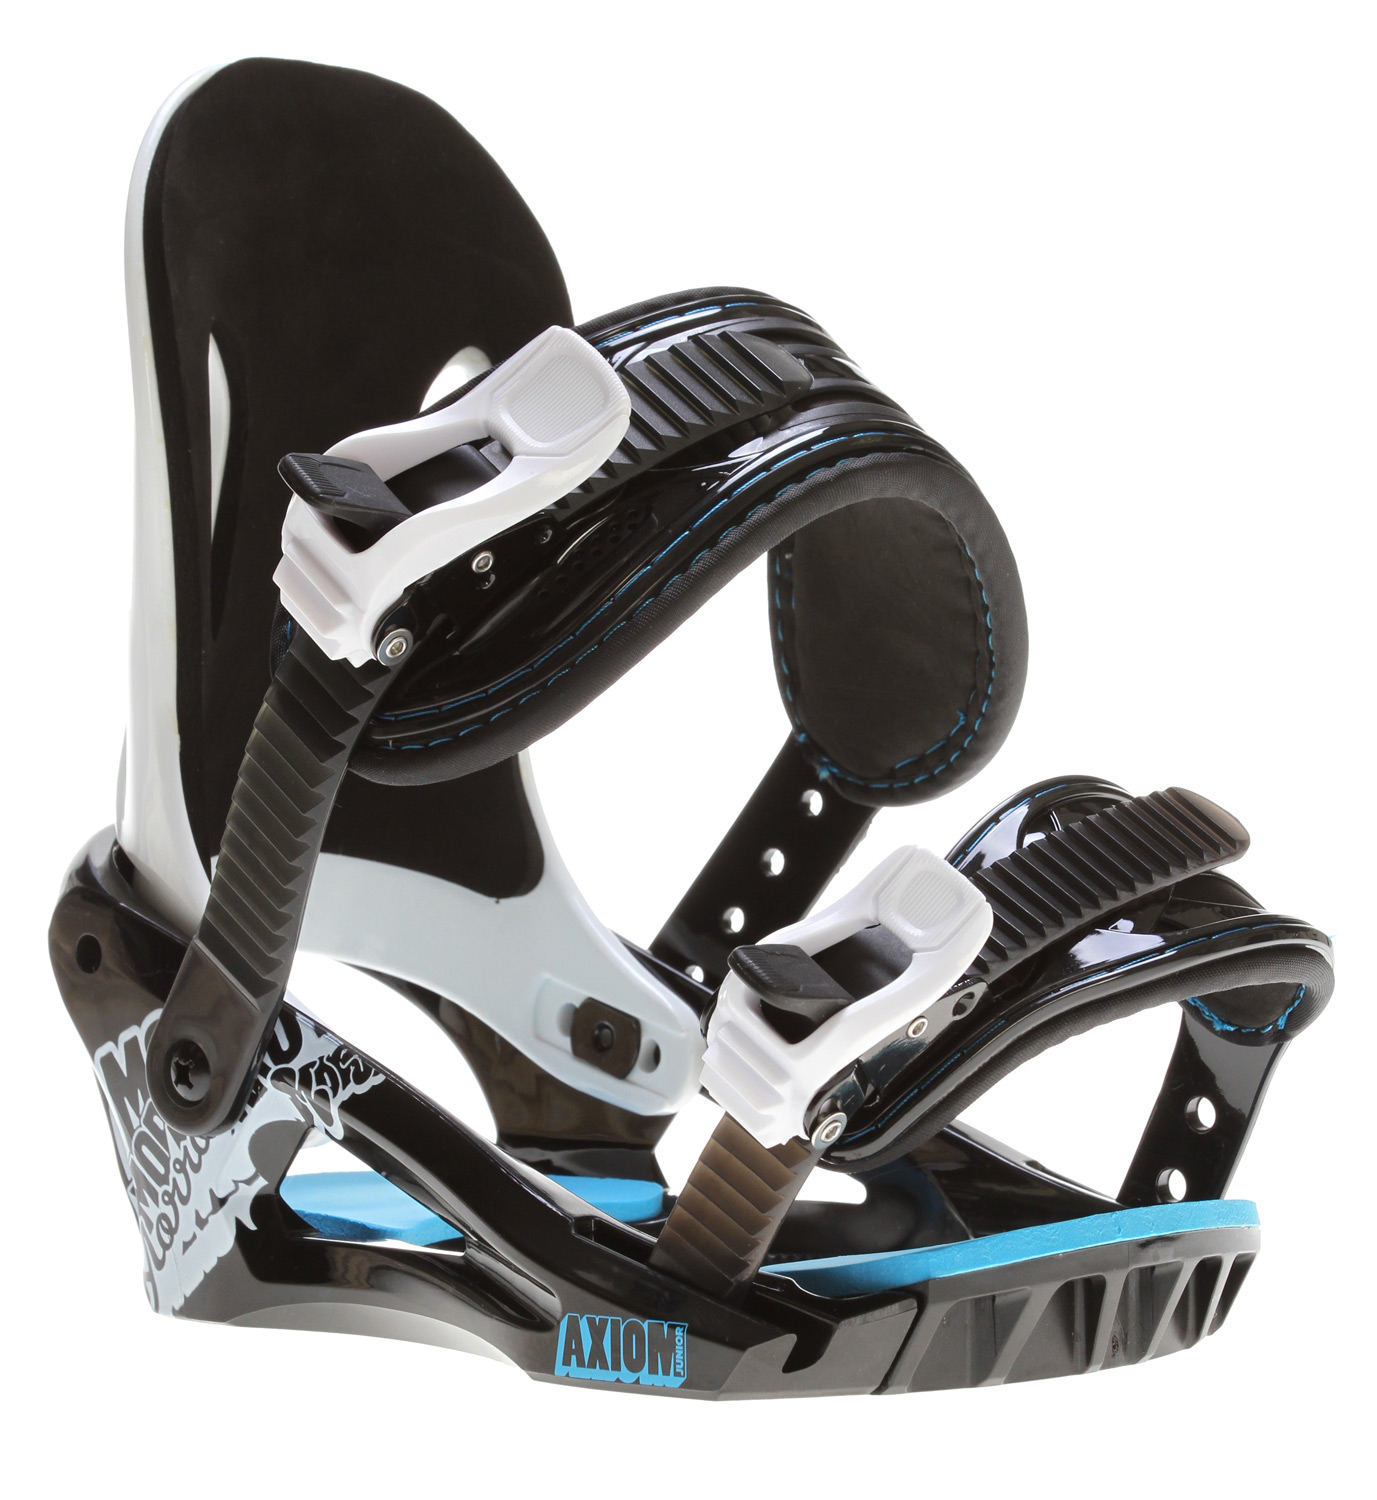 Snowboard The Axiom Jr. snowboard binding is packed with features to give young riders the comfort and performance they need. The Axiom Jr. features our new cored chassis, stance correct highback and tool-less forward lean adjustment. New, quick release buckles and comfy straps make the Axiom Jr. comfortable and easy to use.Key Features of the Morrow Axiom Bindings: NEW! Lightweight AX Chassis with adjustable toe-ramp NEW! Low-profile ratchet buckles Stance correct cored highback for maximum control Tool-less forward lean adjustment Pro-Response and Flipside Straps 360degrees disc mount for virtually limitless stance options - $59.95